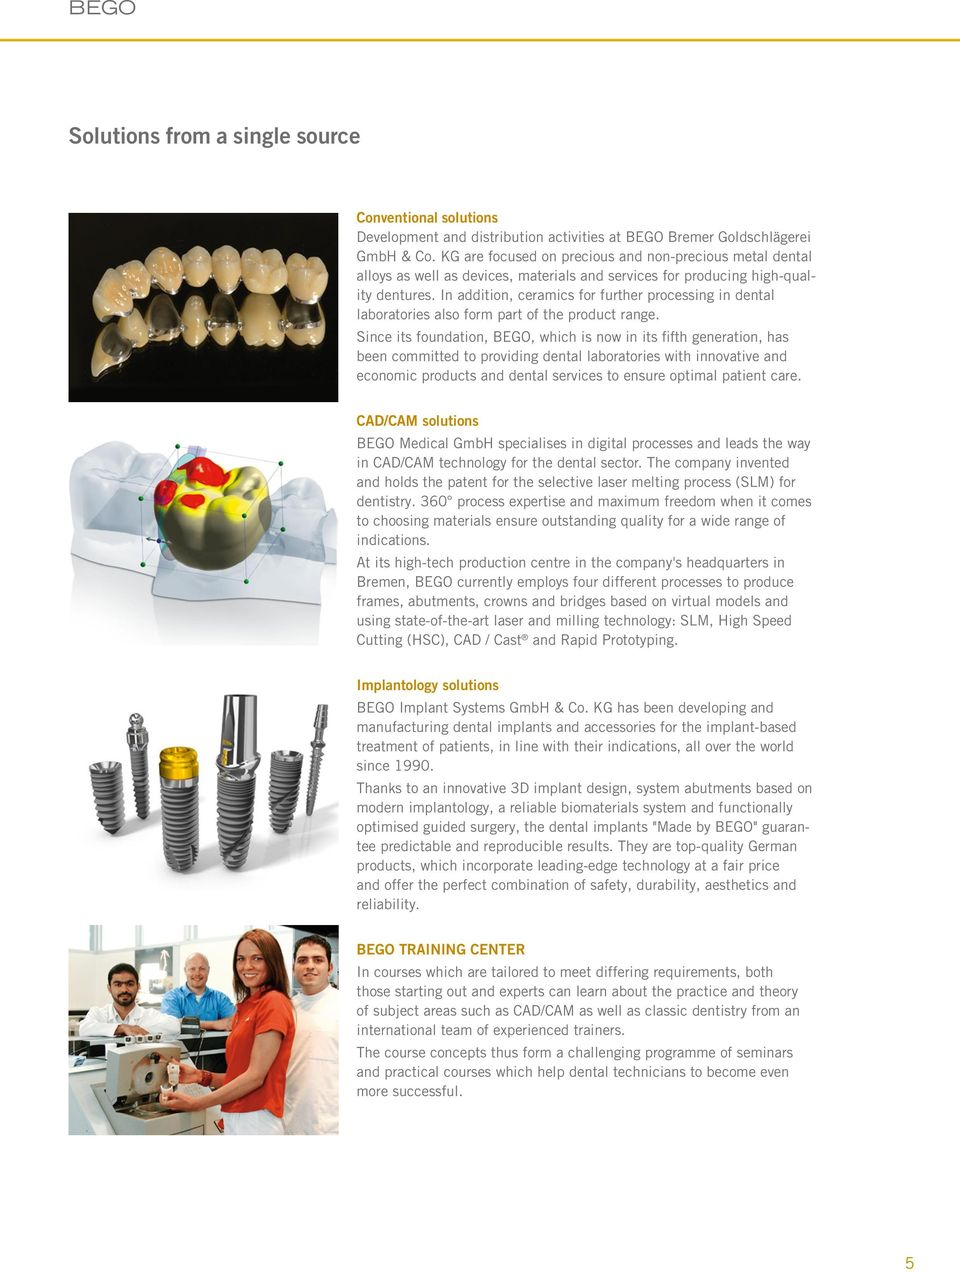 In addition, ceramics for further processing in dental laboratories also form part of the product range.